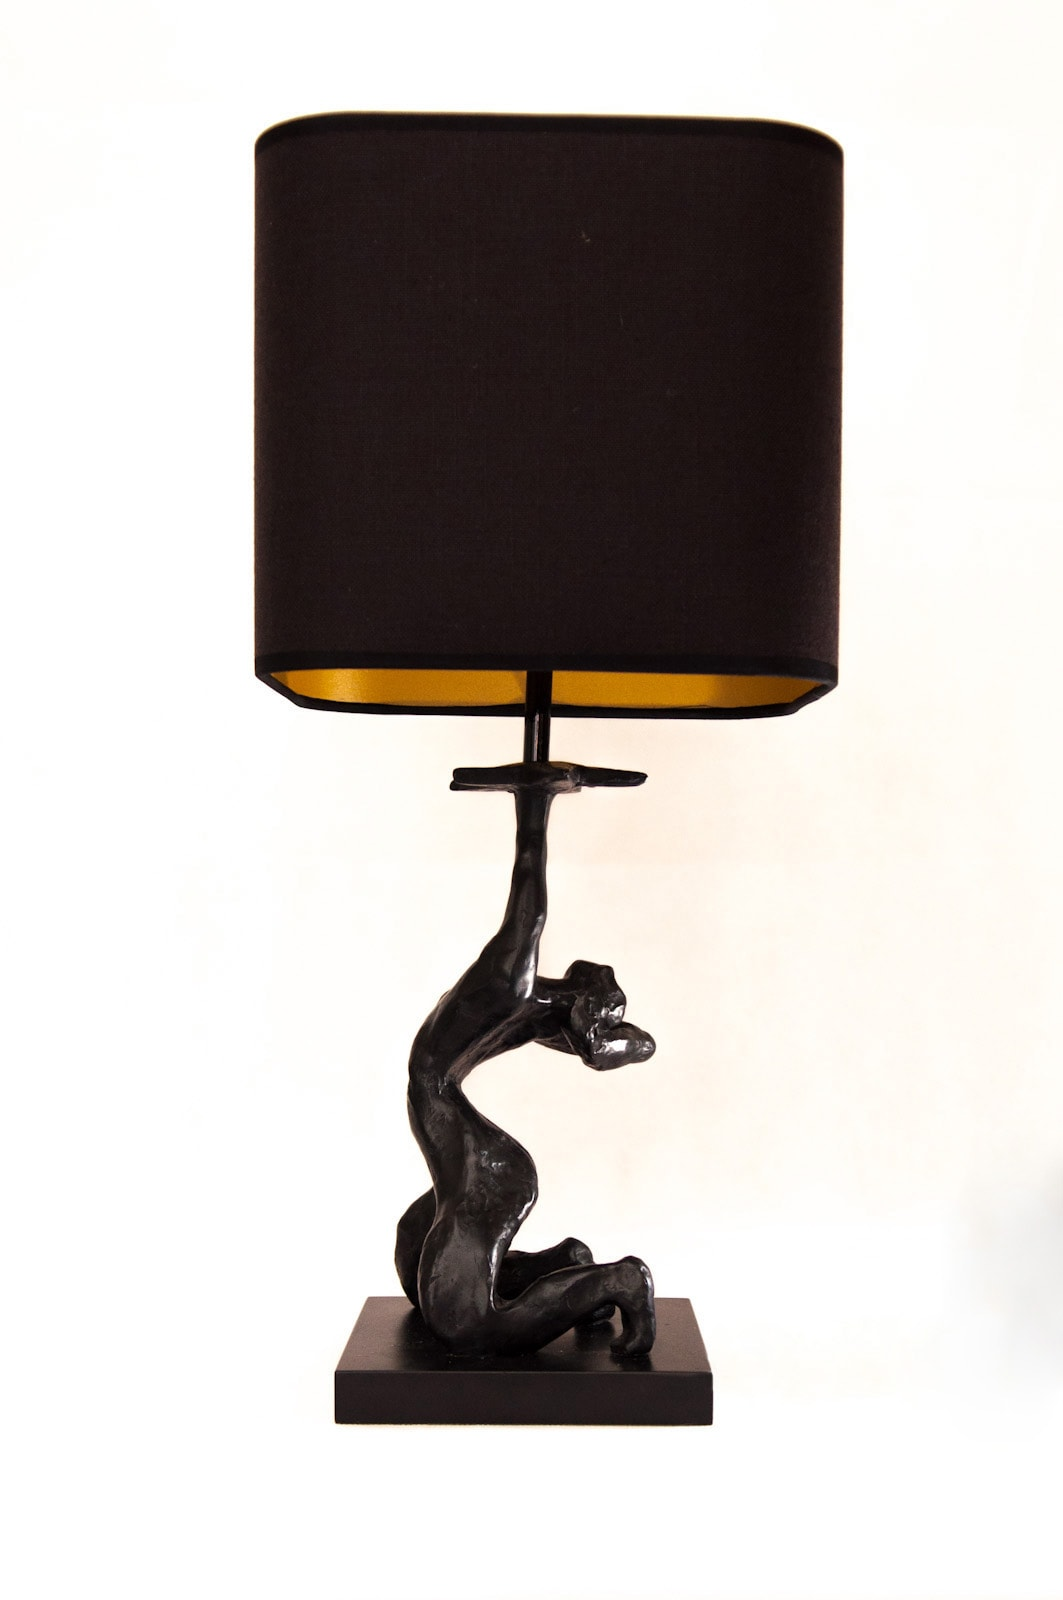 Paris bronzed lamp base with black and gold lampshade by Kinkatou for AUTHOR